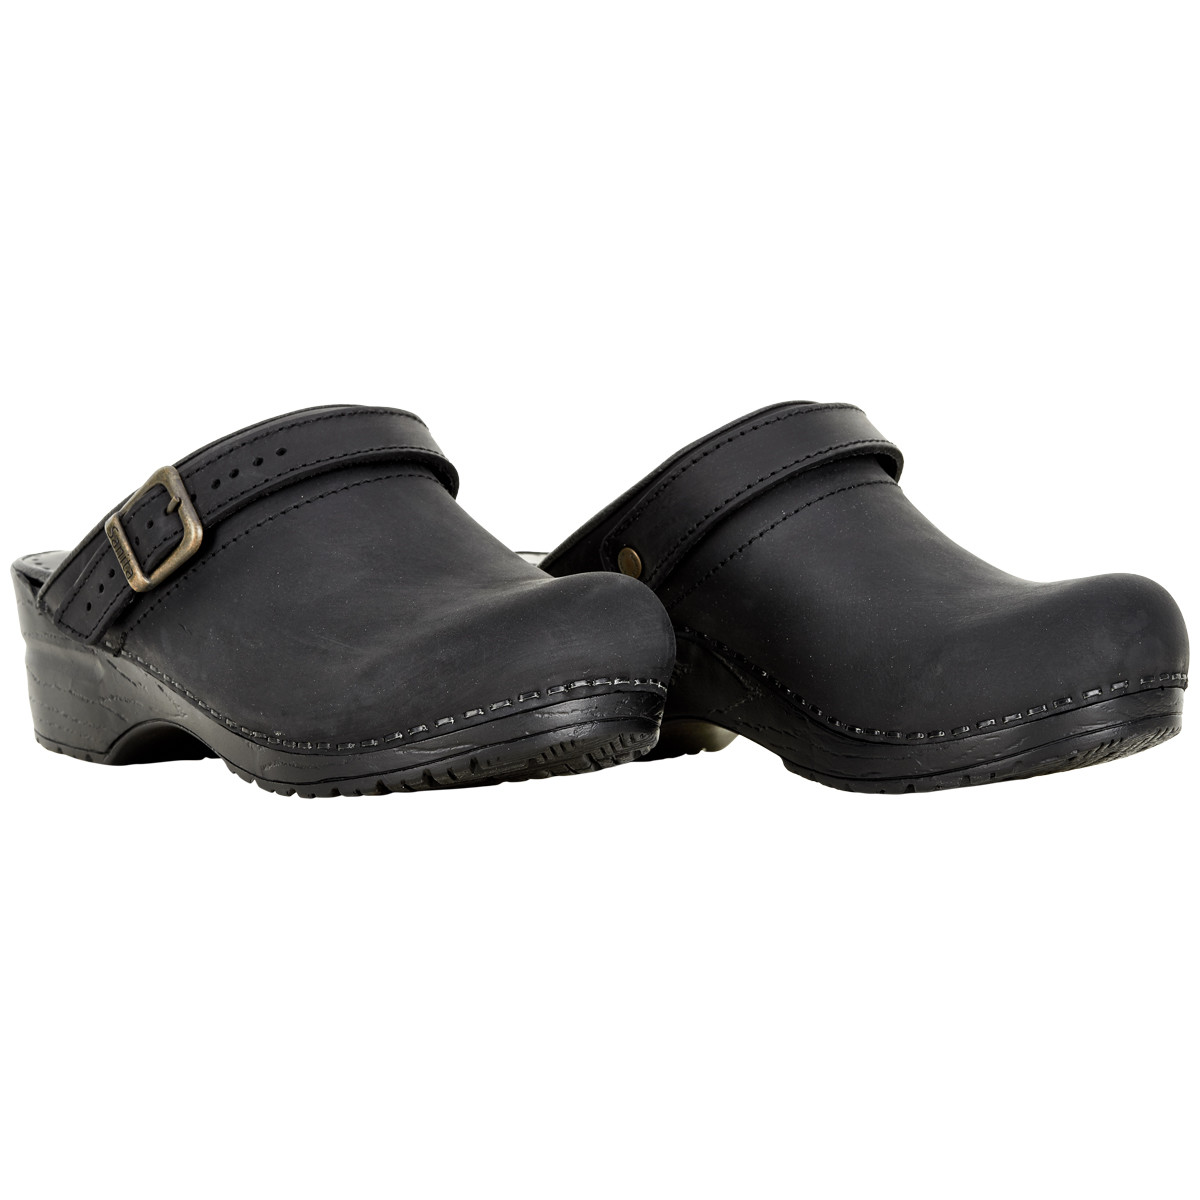 SANITA MORSE CLOGS 1200038 2